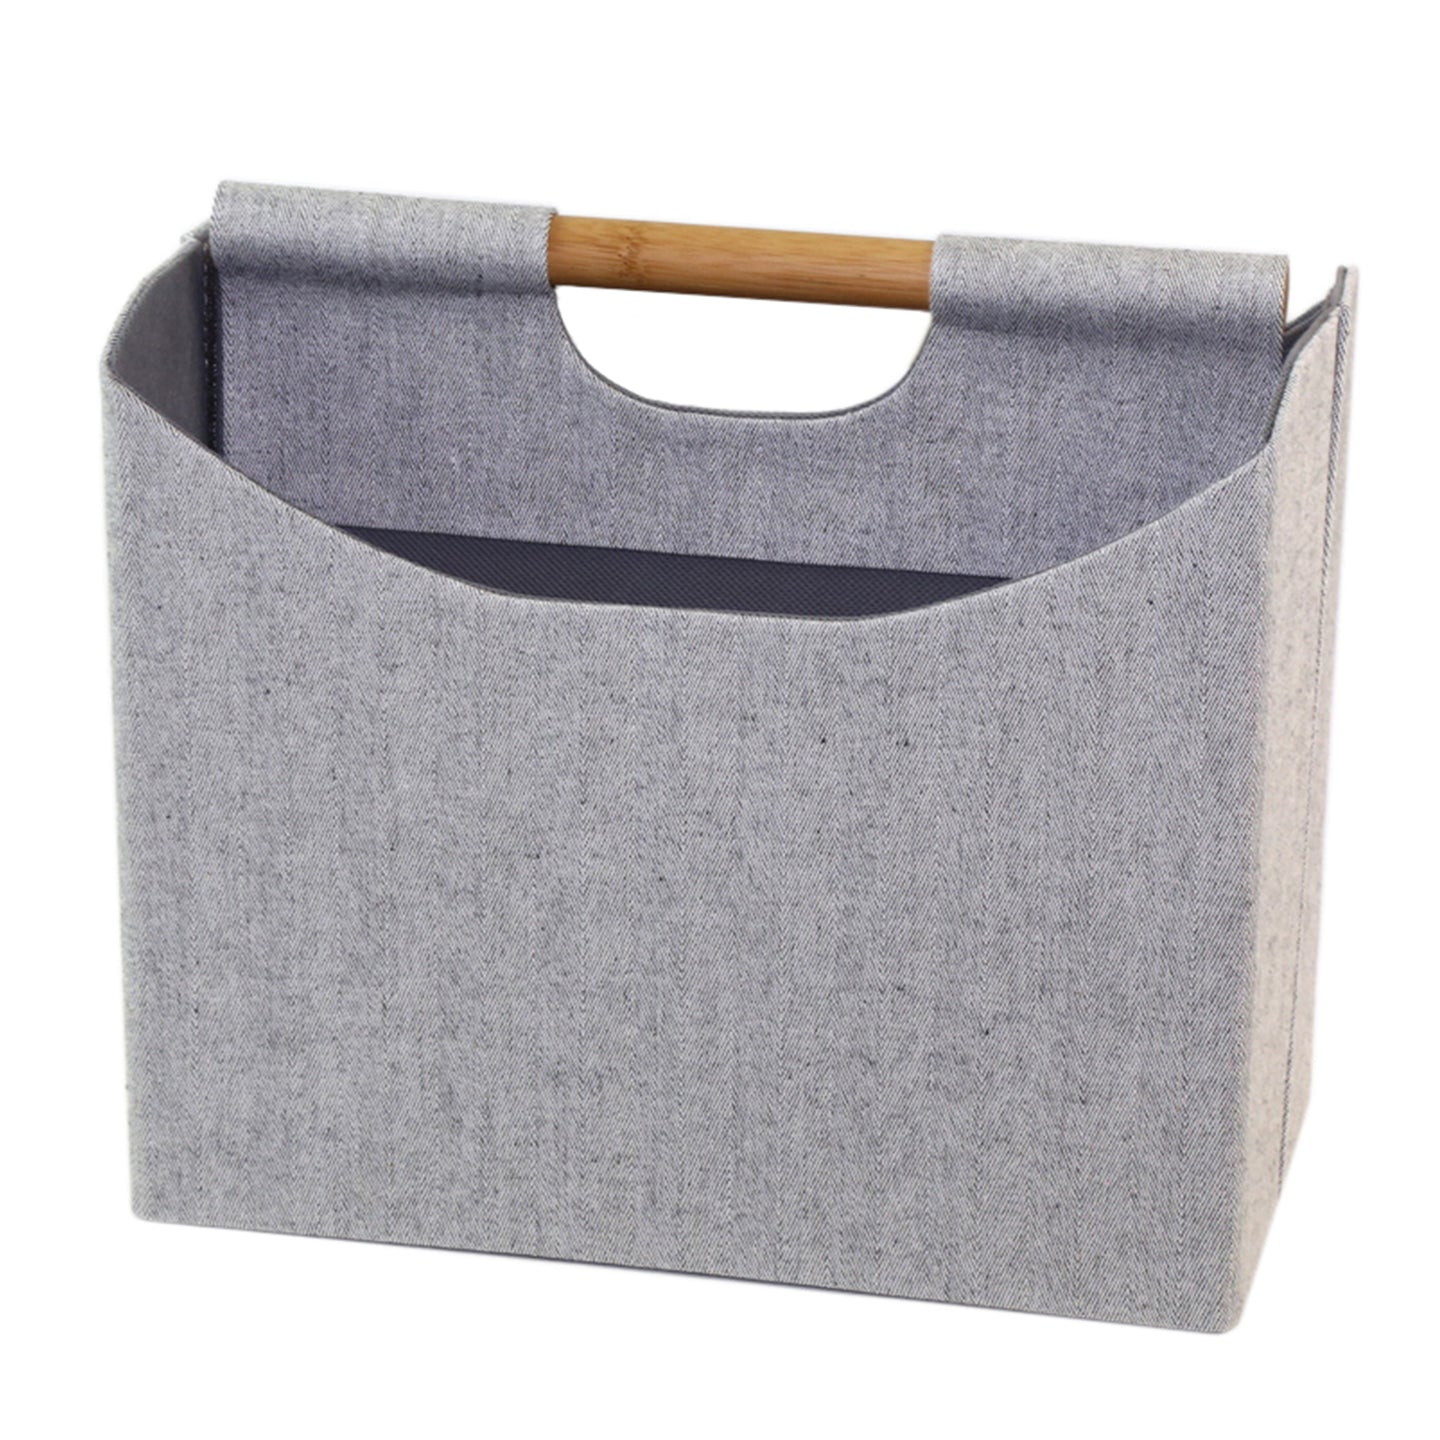 Foldable Storage Bin 2 Compartment